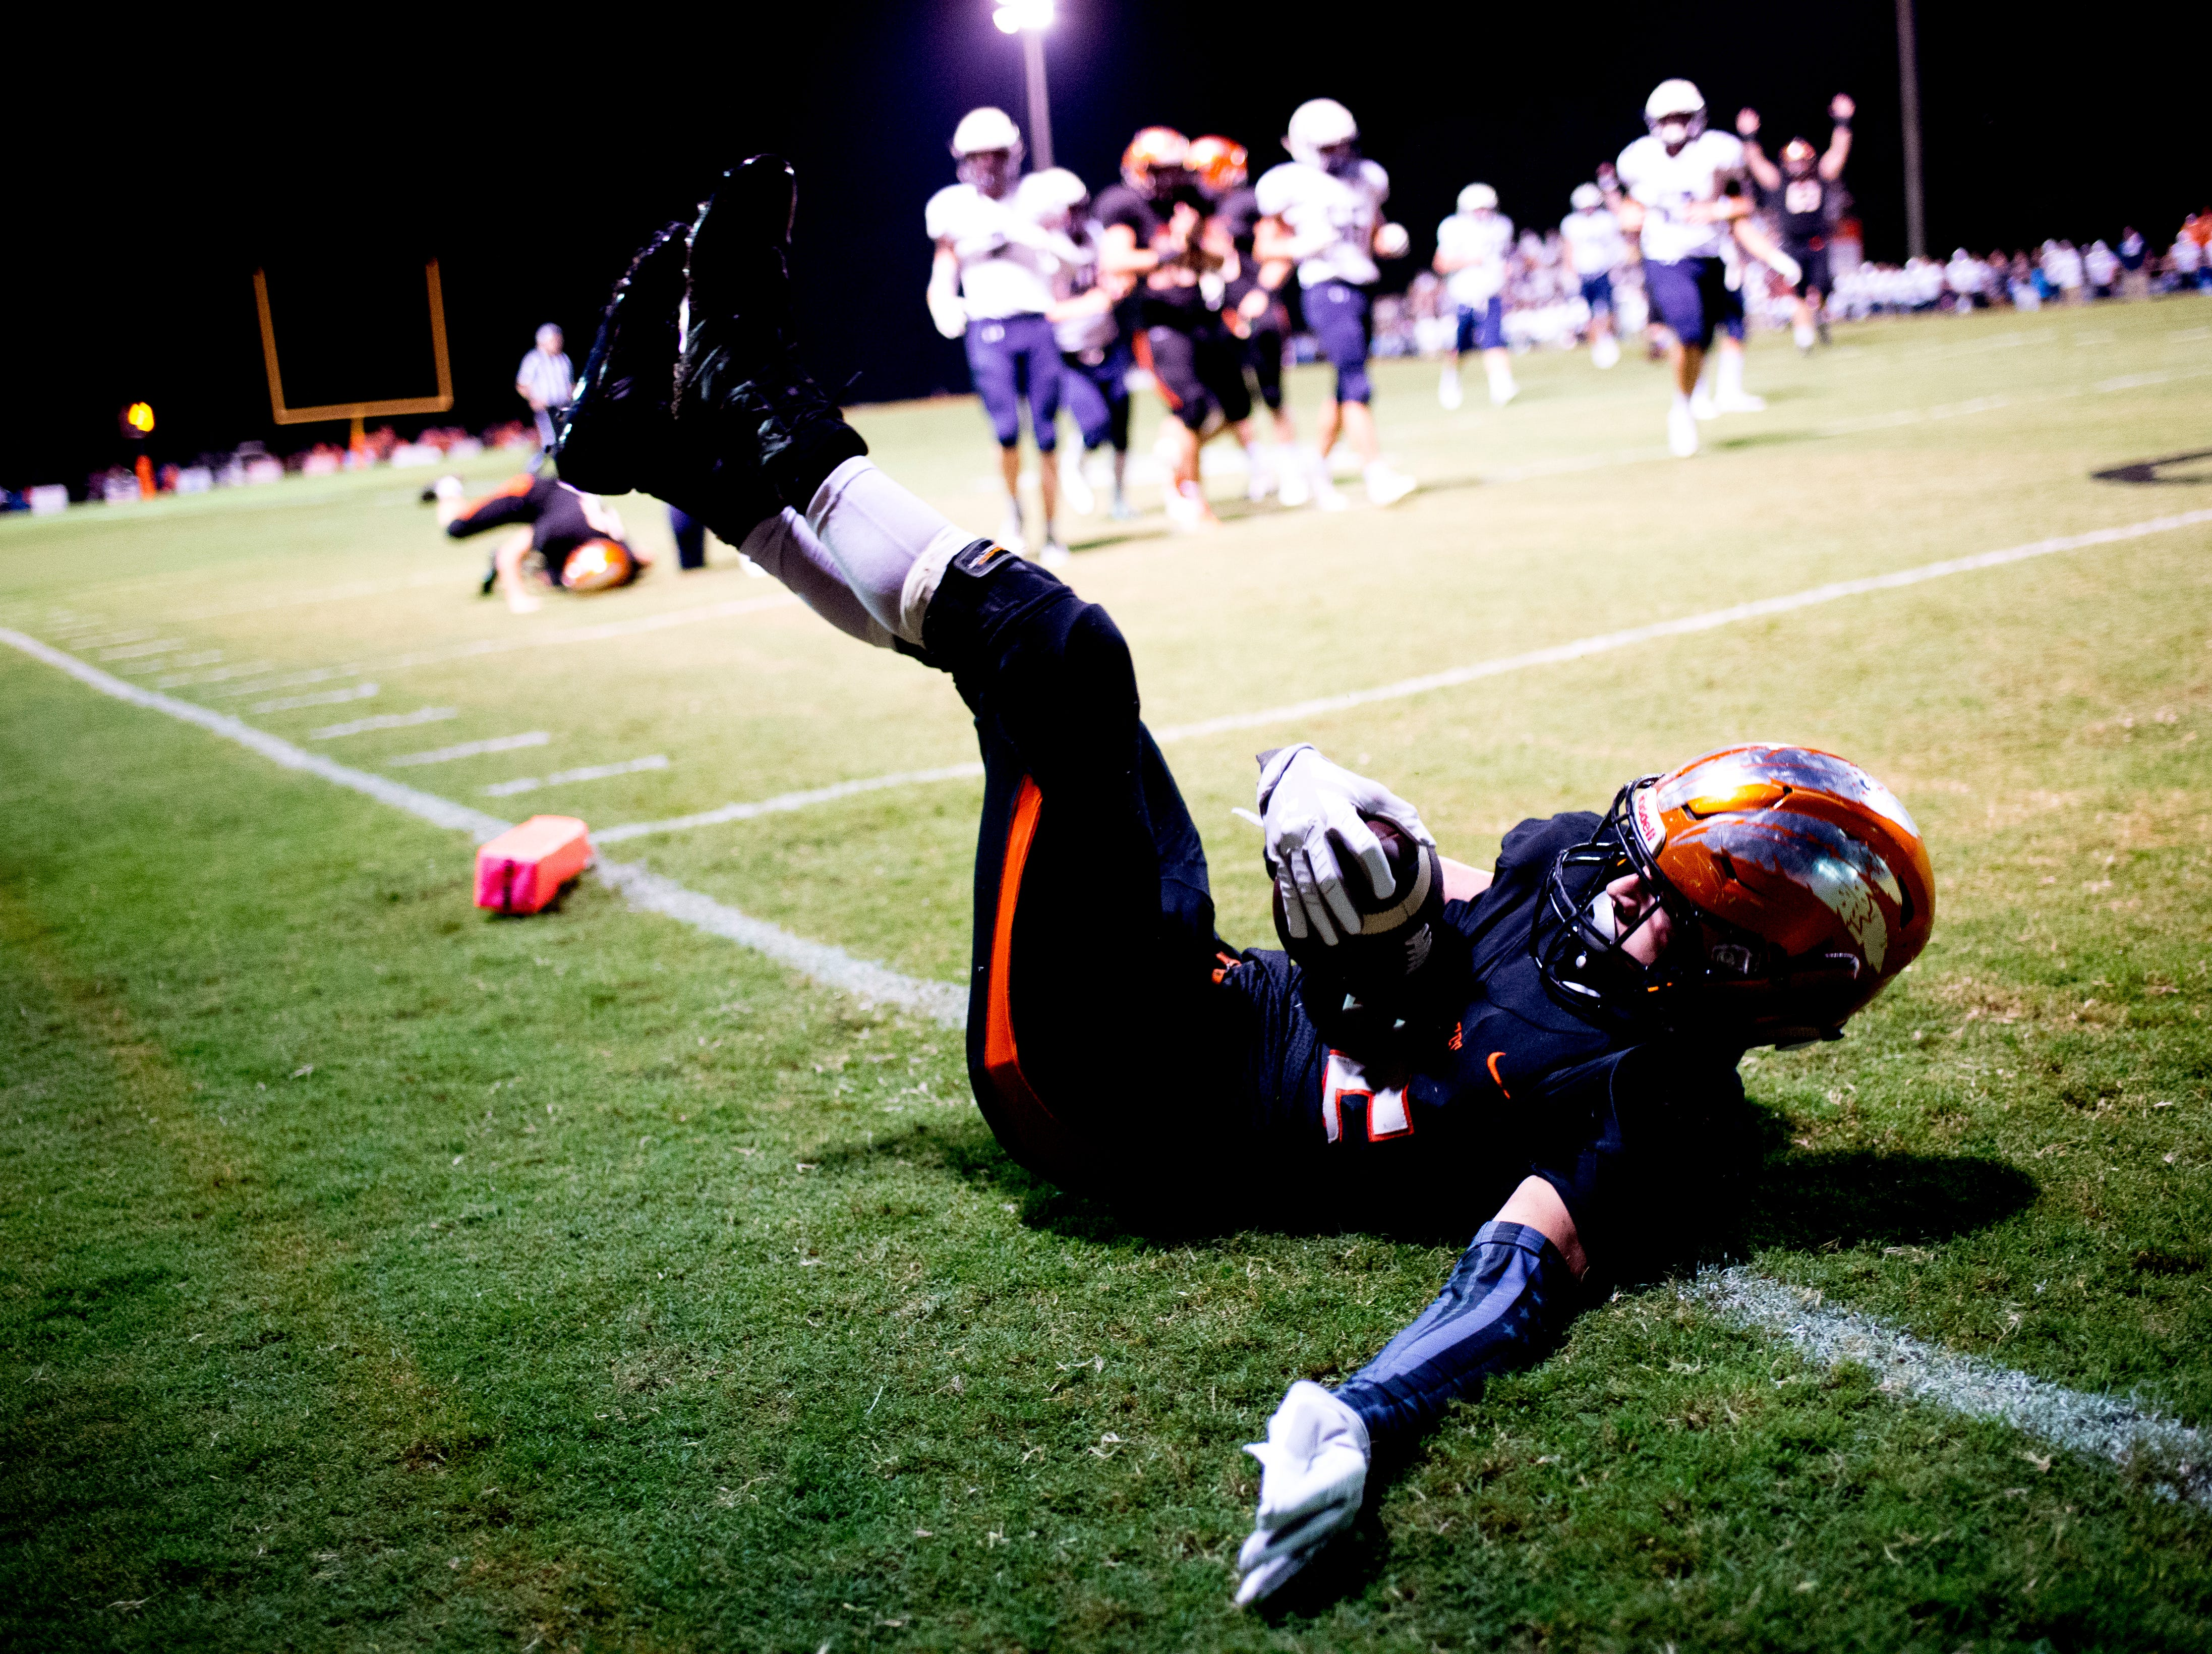 Greenback's Cody Alexander (36) falls into the end zone for a touchdown attempt during a football game between Greenback and Grace Christian at Greenback High School in Greenback, Tennessee on Thursday, September 20, 2018.